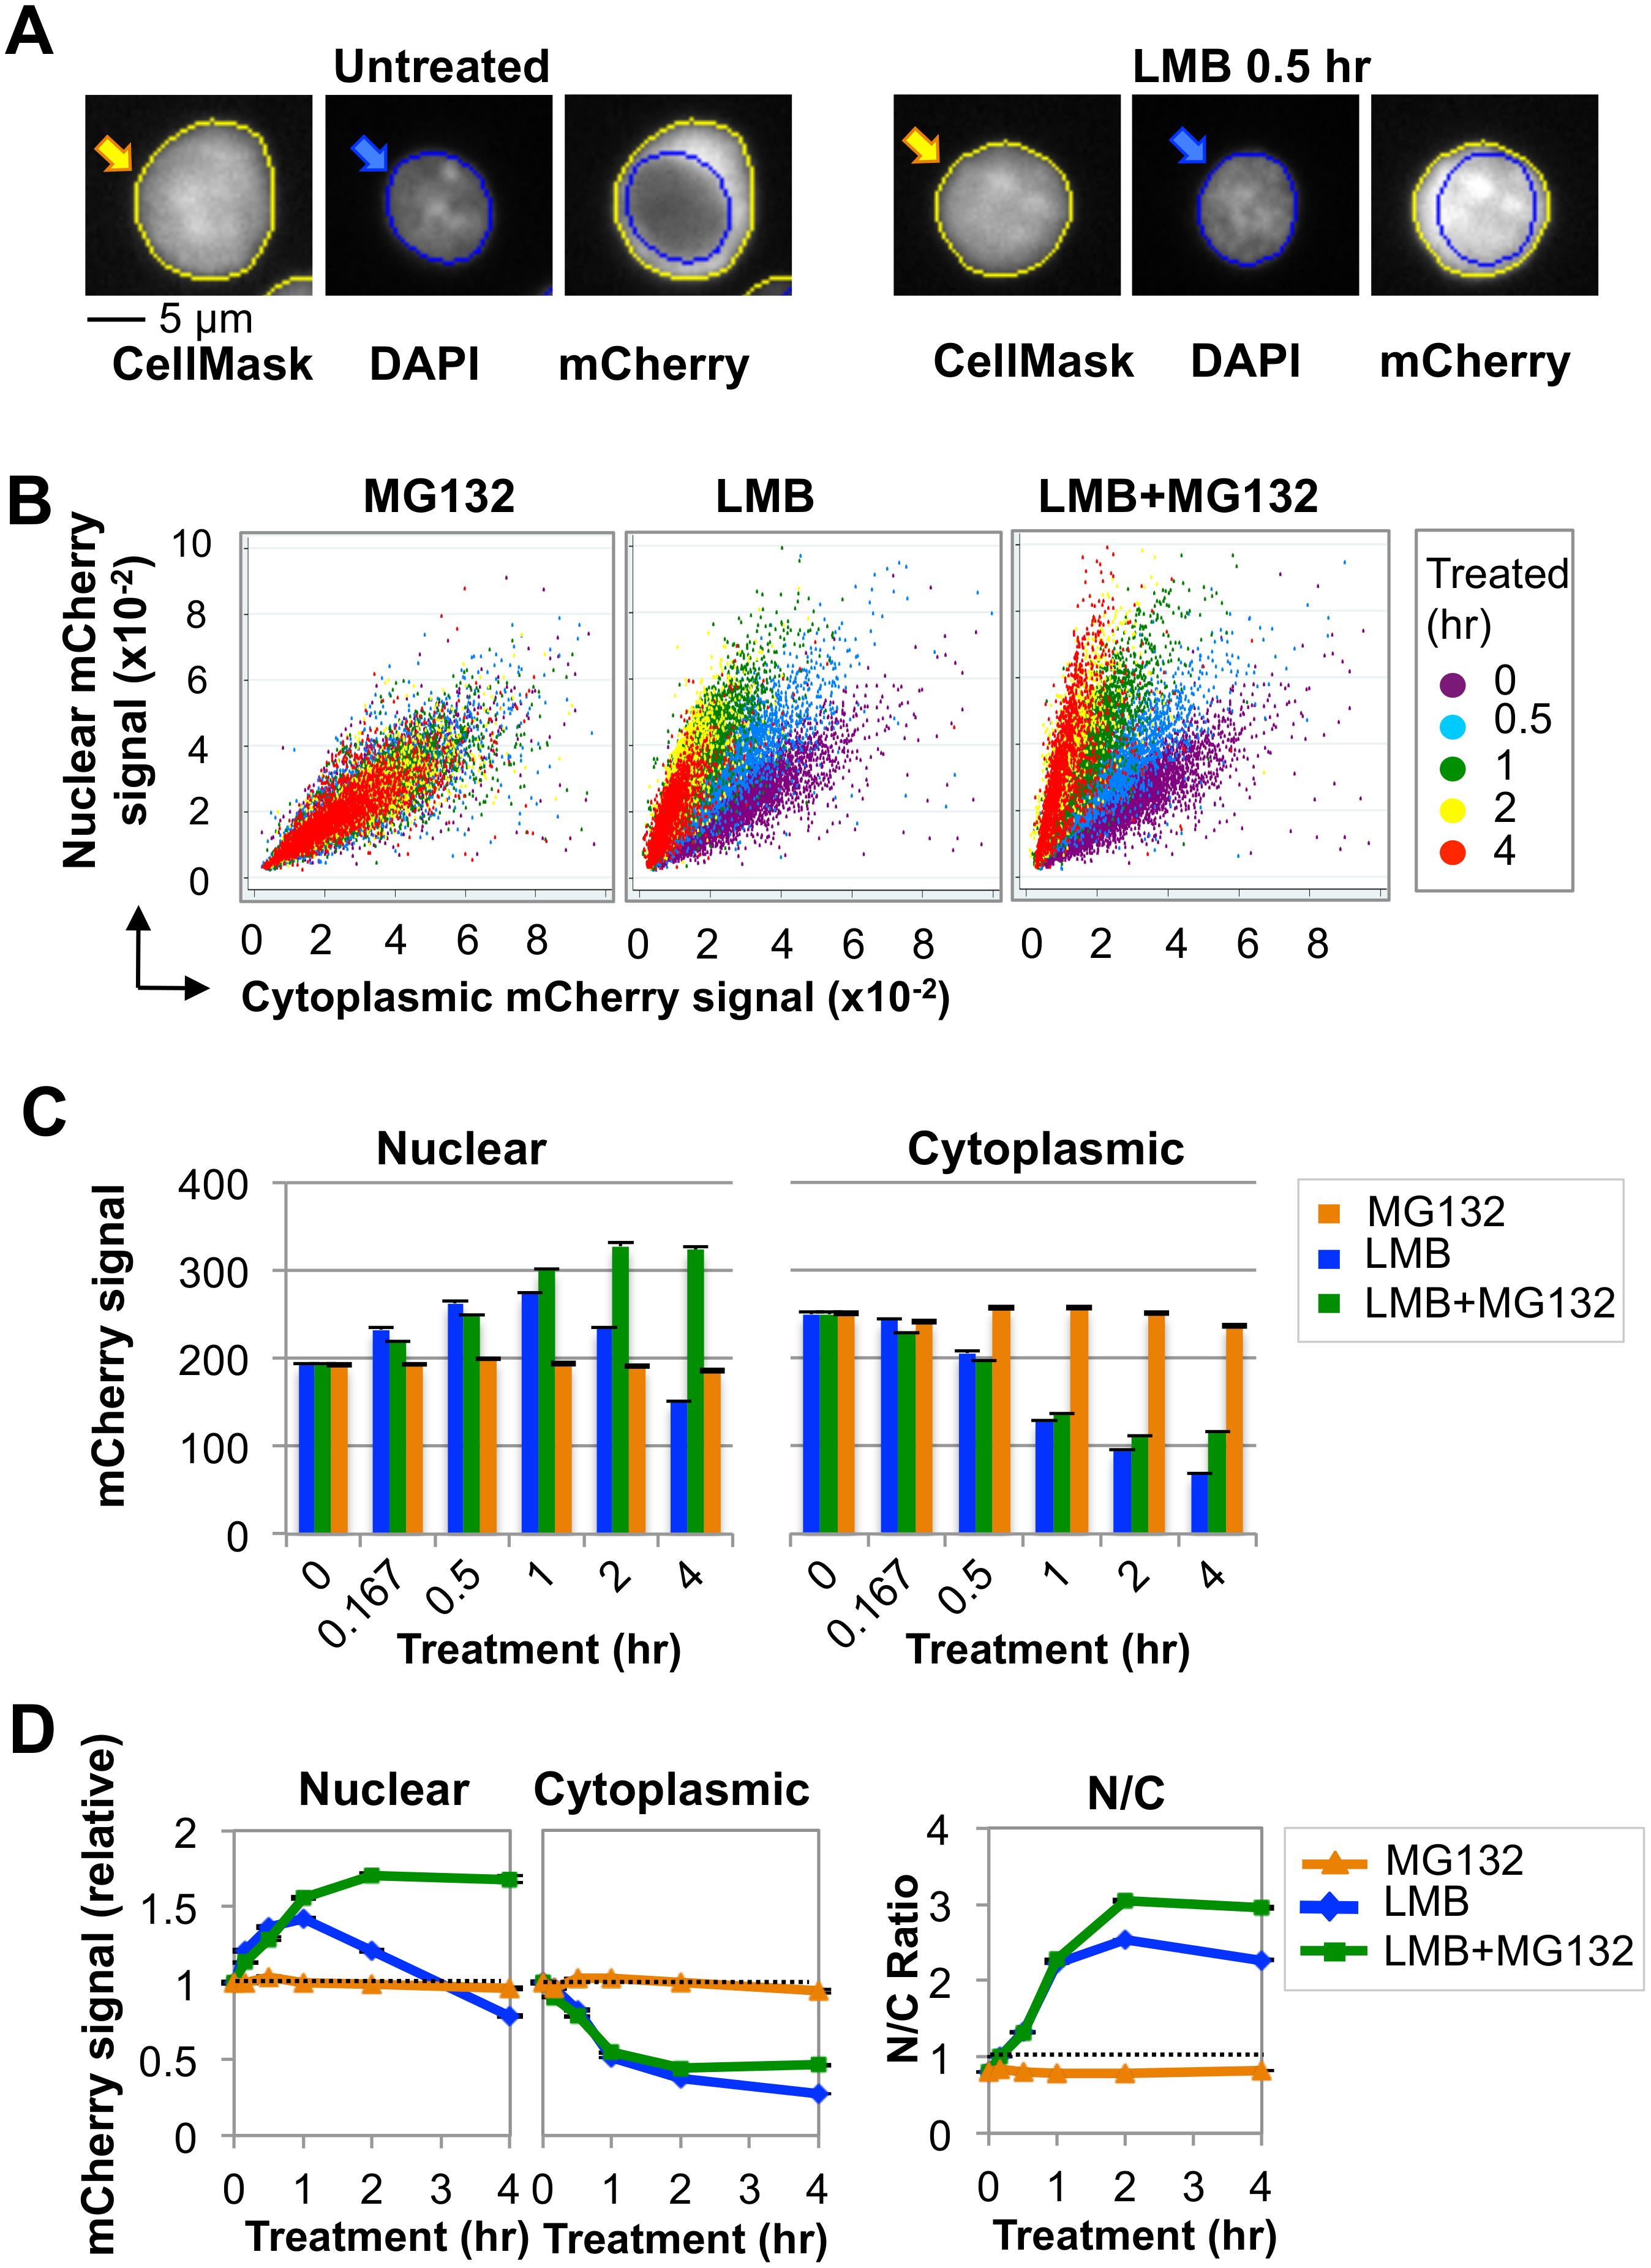 Nuclear AID is destabilized by ubiquitin-dependent proteolysis.